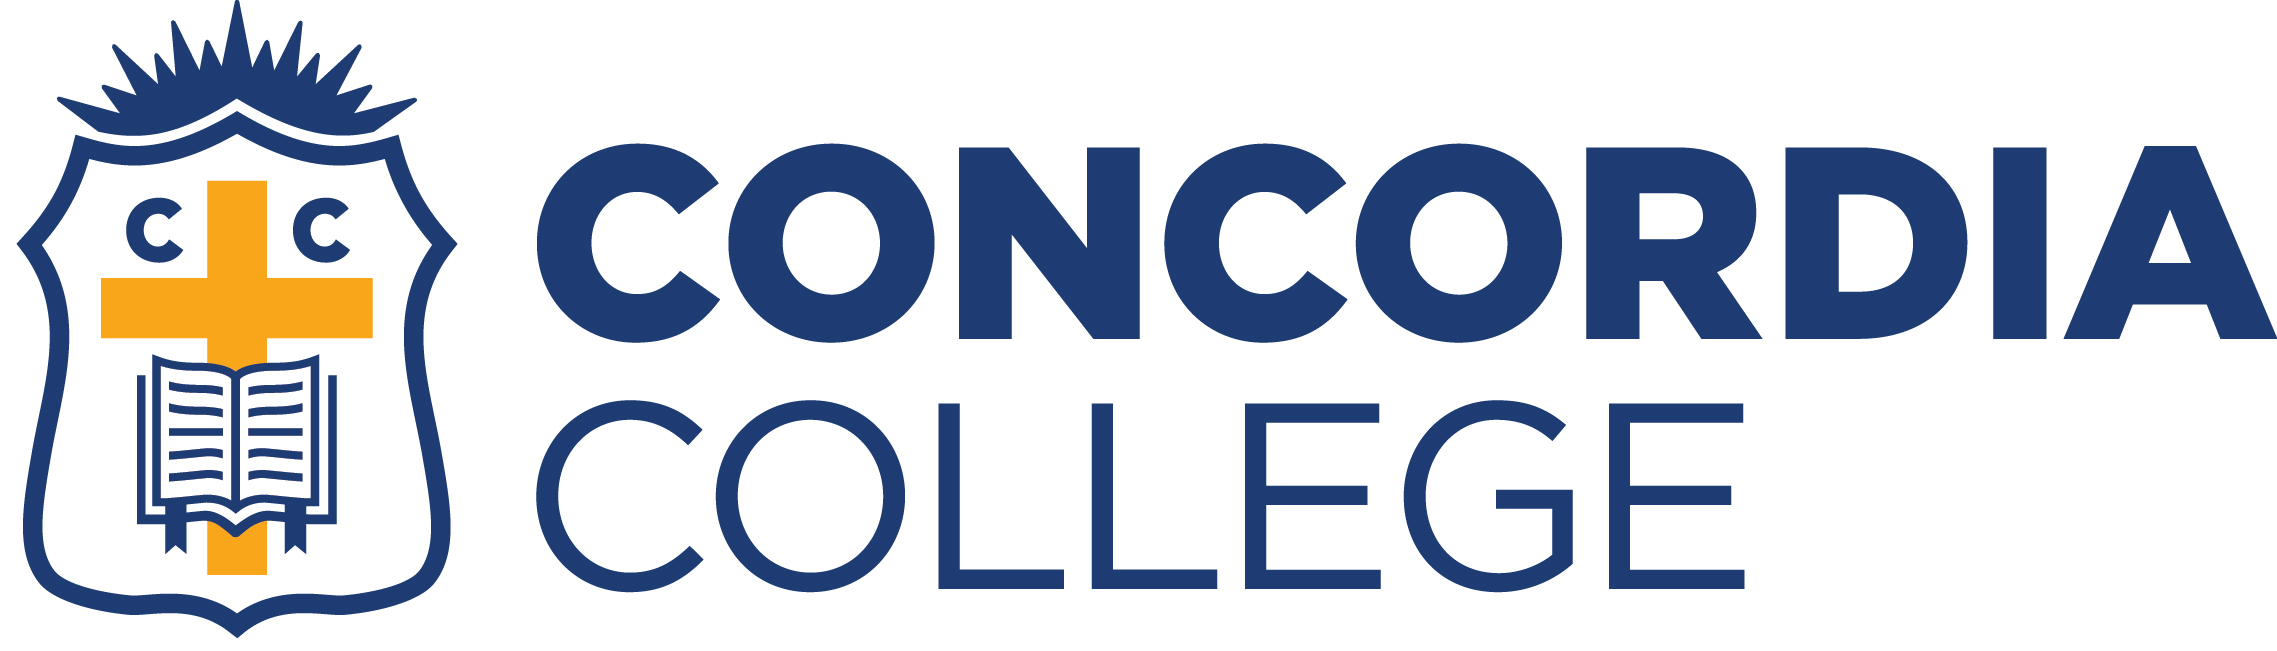 Concordia College - International Baccalaureate